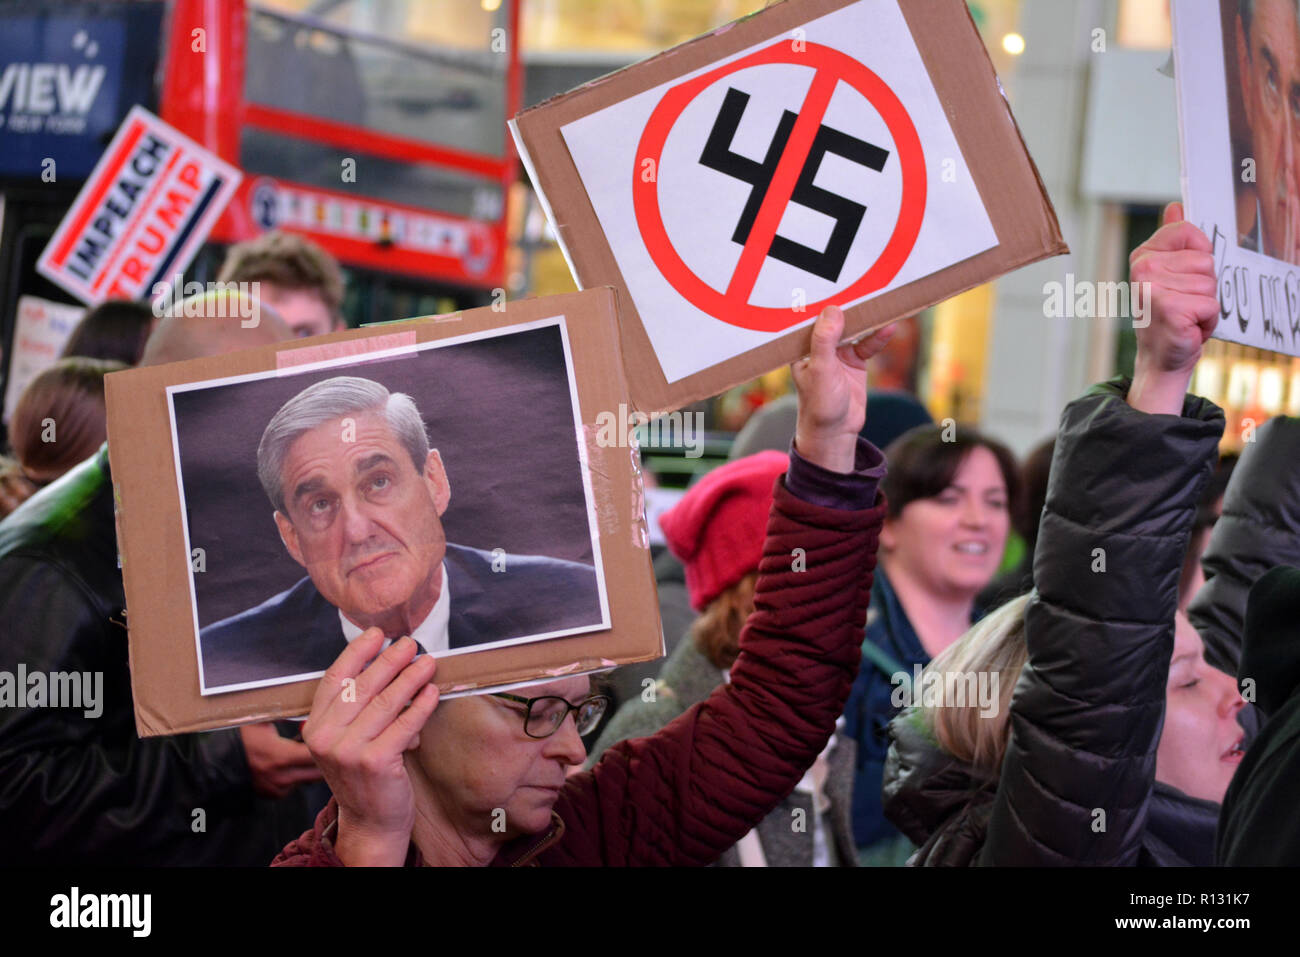 New York, USA. 8th November, 2018. Protesters gathered in Times Square over President Trump's firing of Attorney General Jeff Sessions and to support special counsel Robert Mueller. Credit: Christopher Penler/Alamy Live News - Stock Image